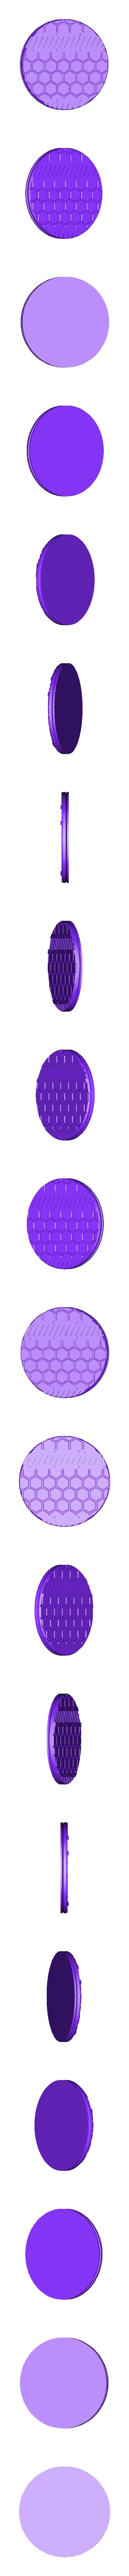 """Geo_-_2_inch.stl Download free STL file 1"""" & 2' Round Bases - The Ignis Quadrant • 3D printing template, ec3d"""